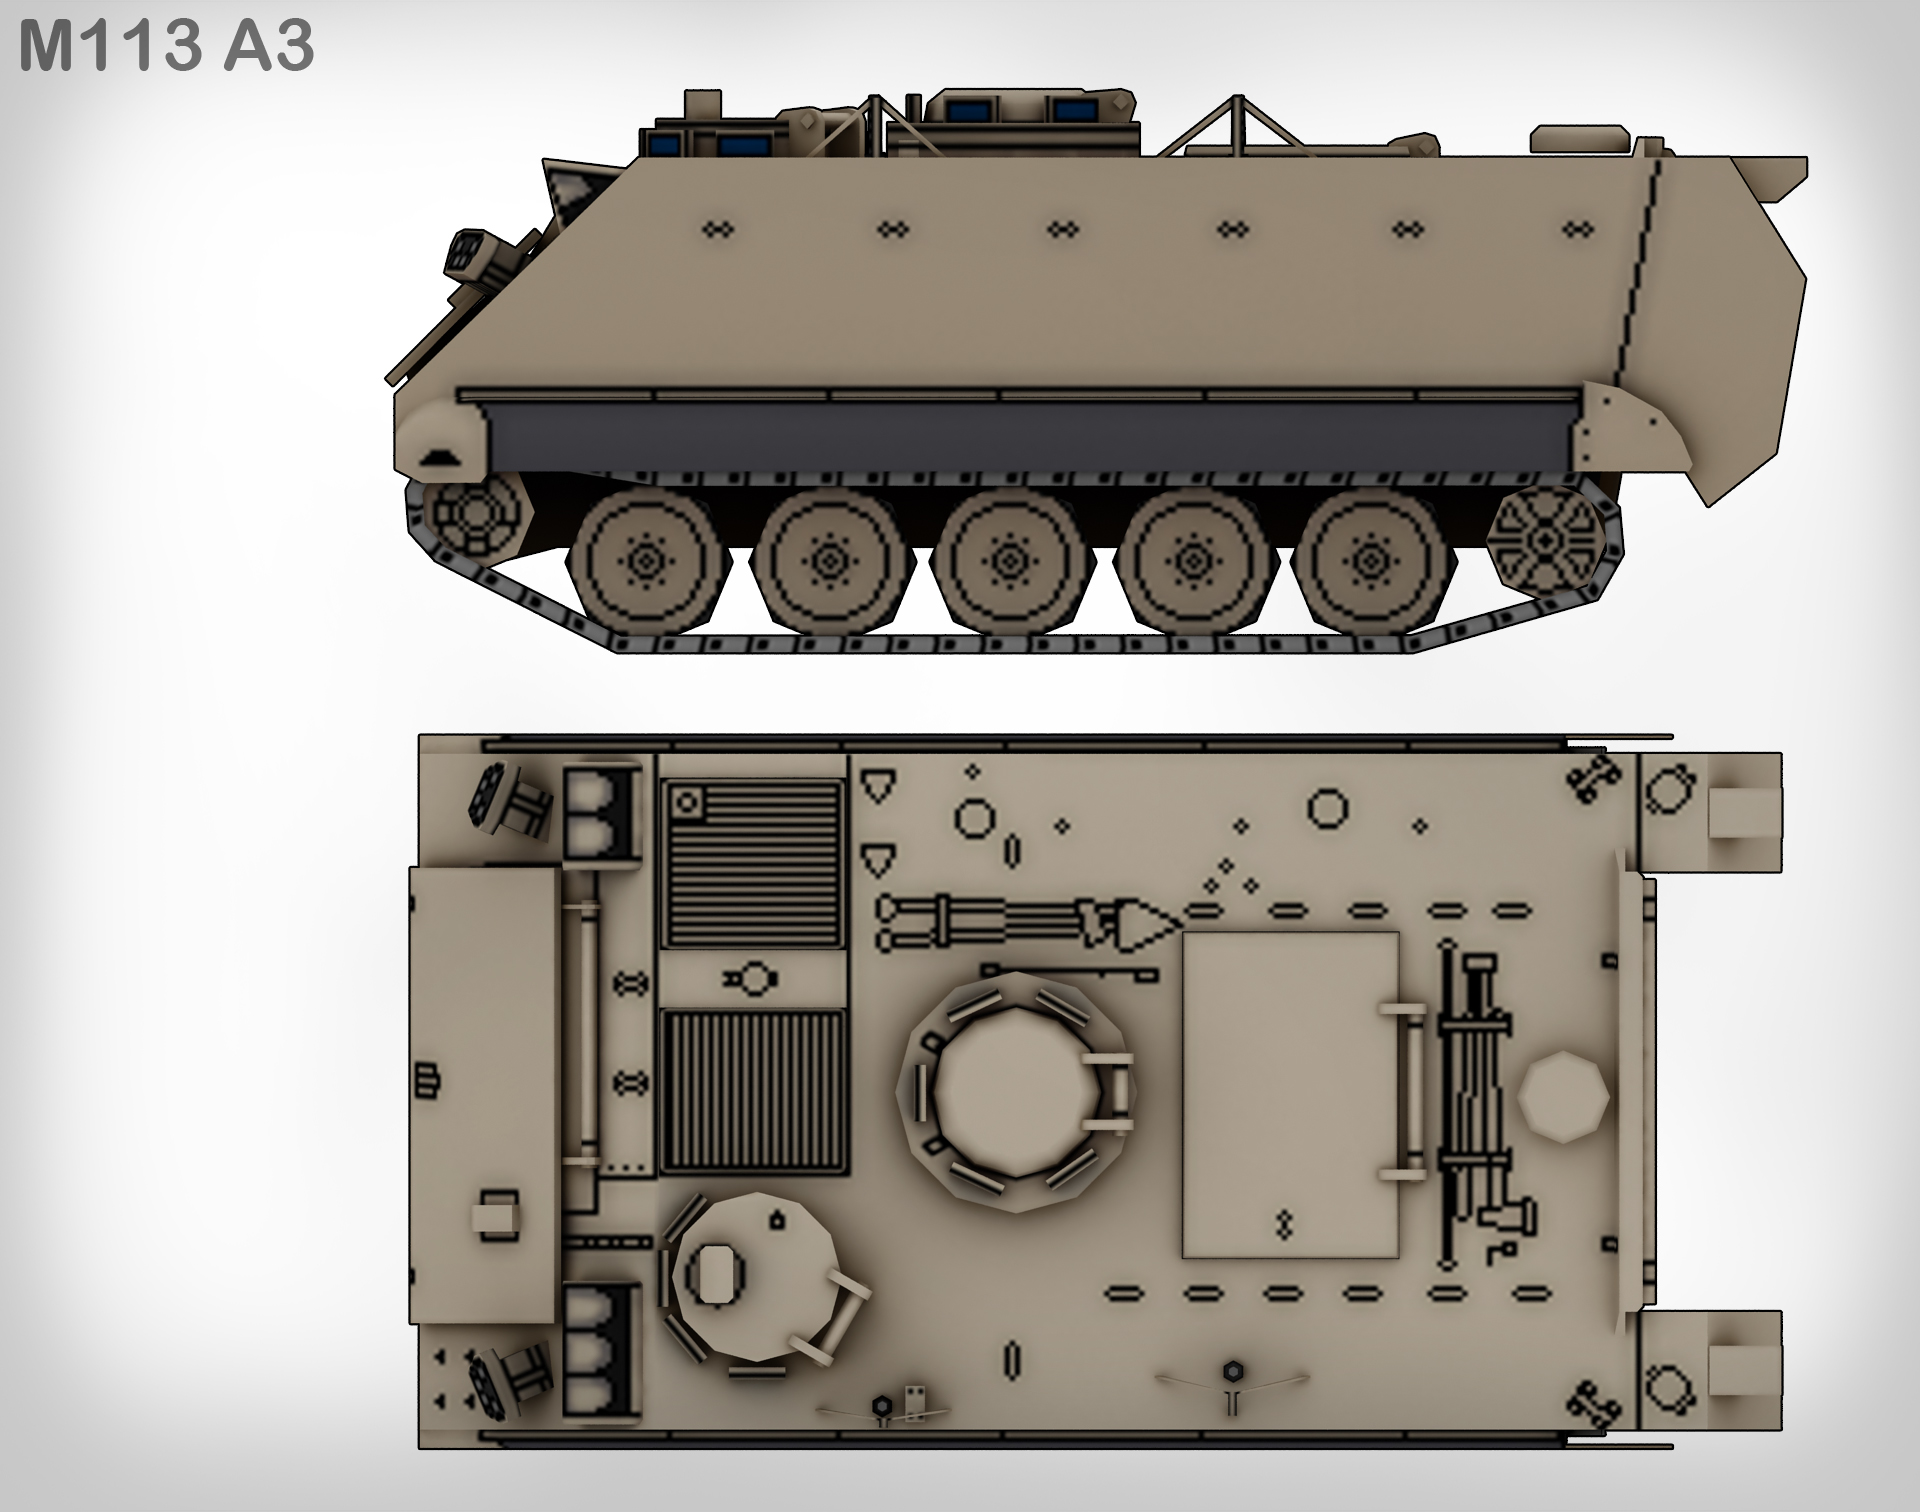 M113 Line Drawing The M113 is an Armored